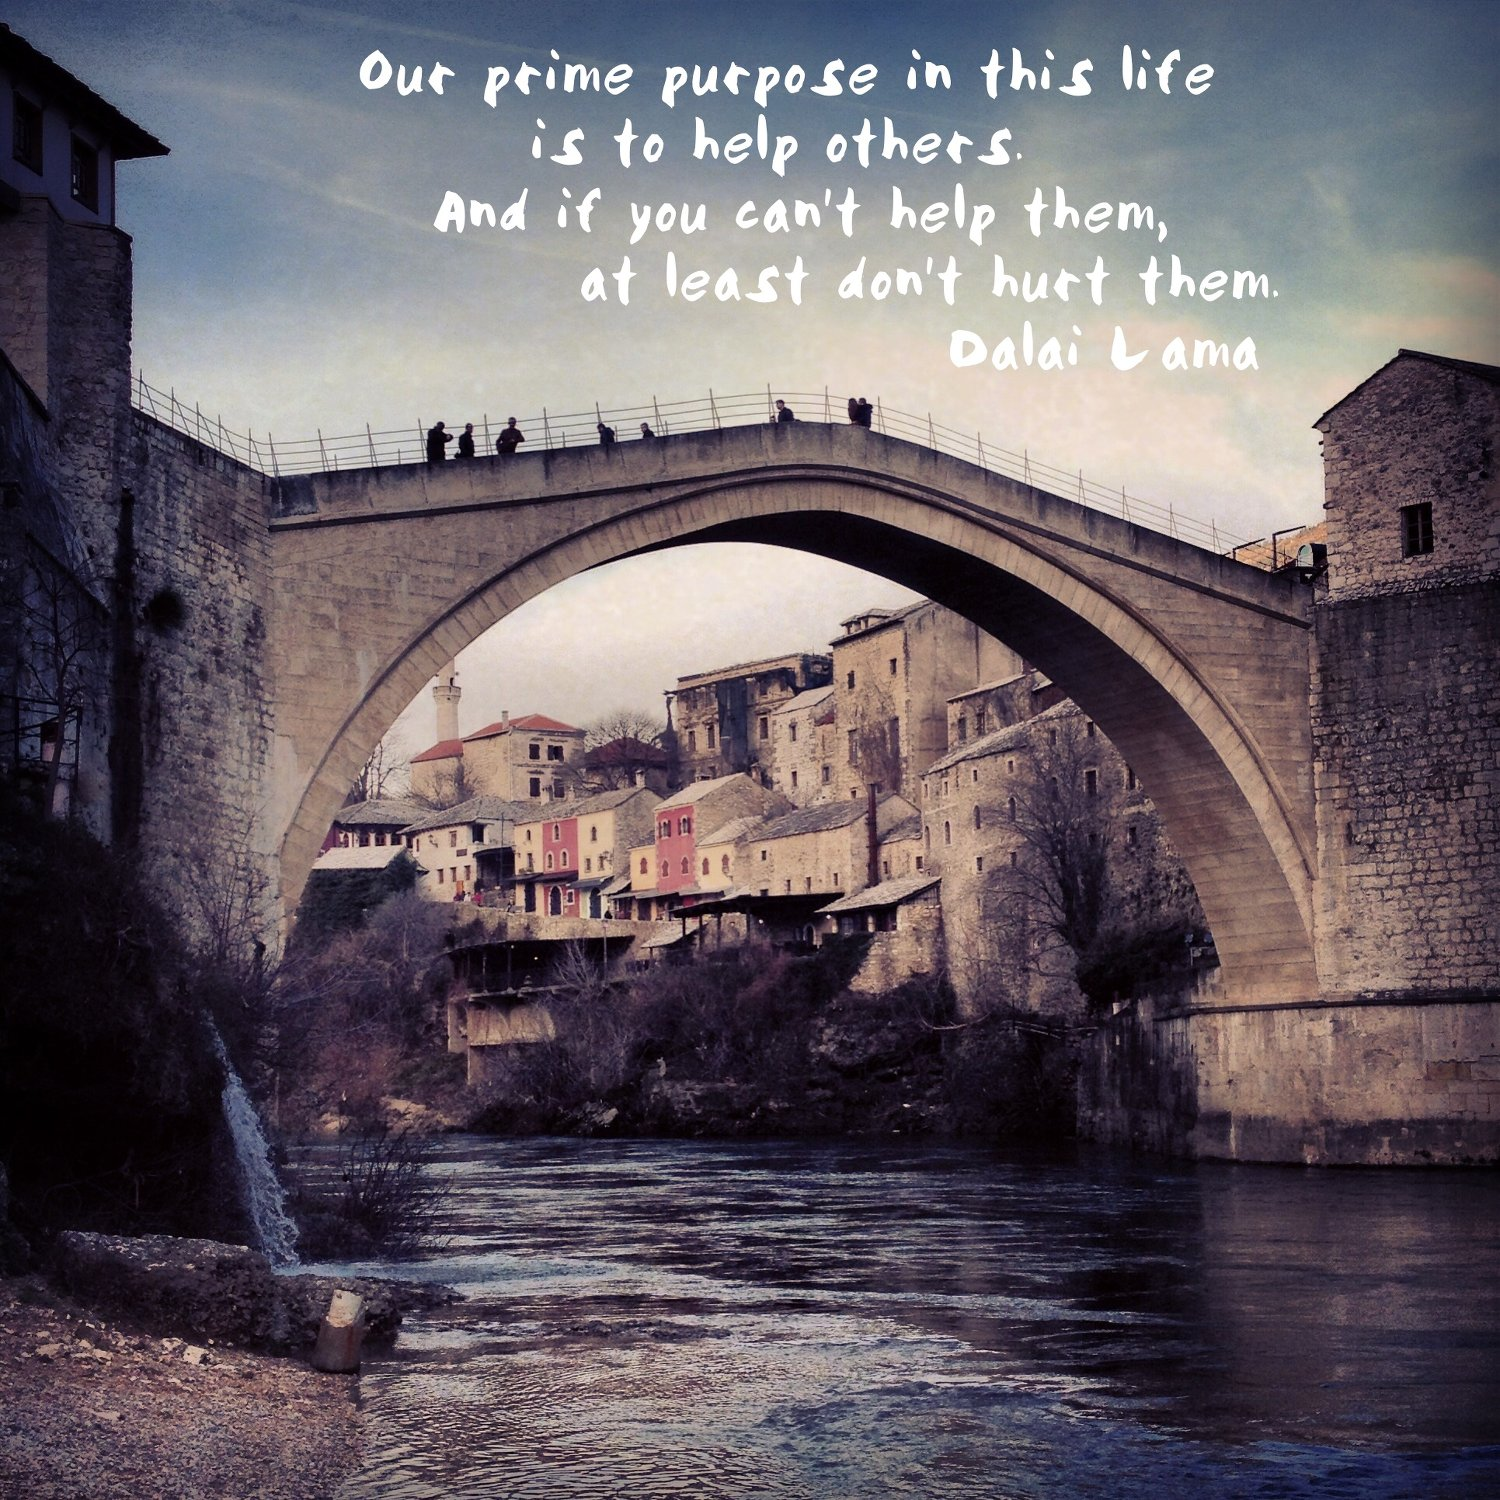 Prime purpose in this life is to help others ~Dalai Lama